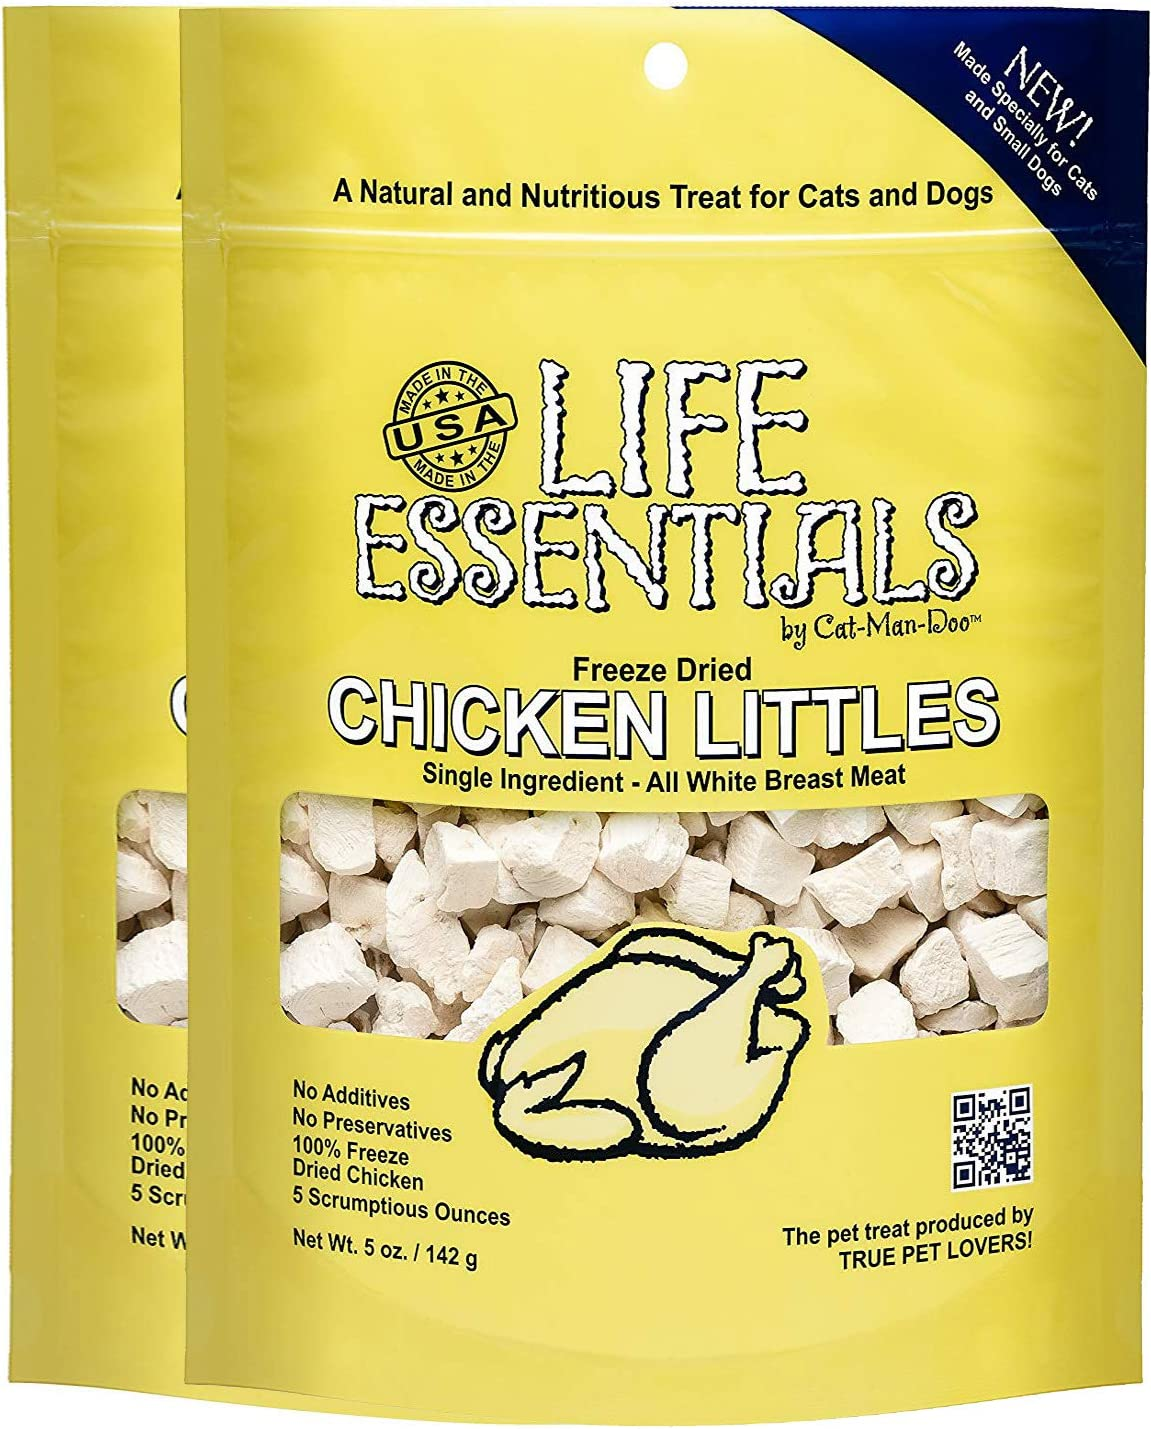 Freeze Dried Chicken Little s for Dogs Cats -5 oz – 2 Pack